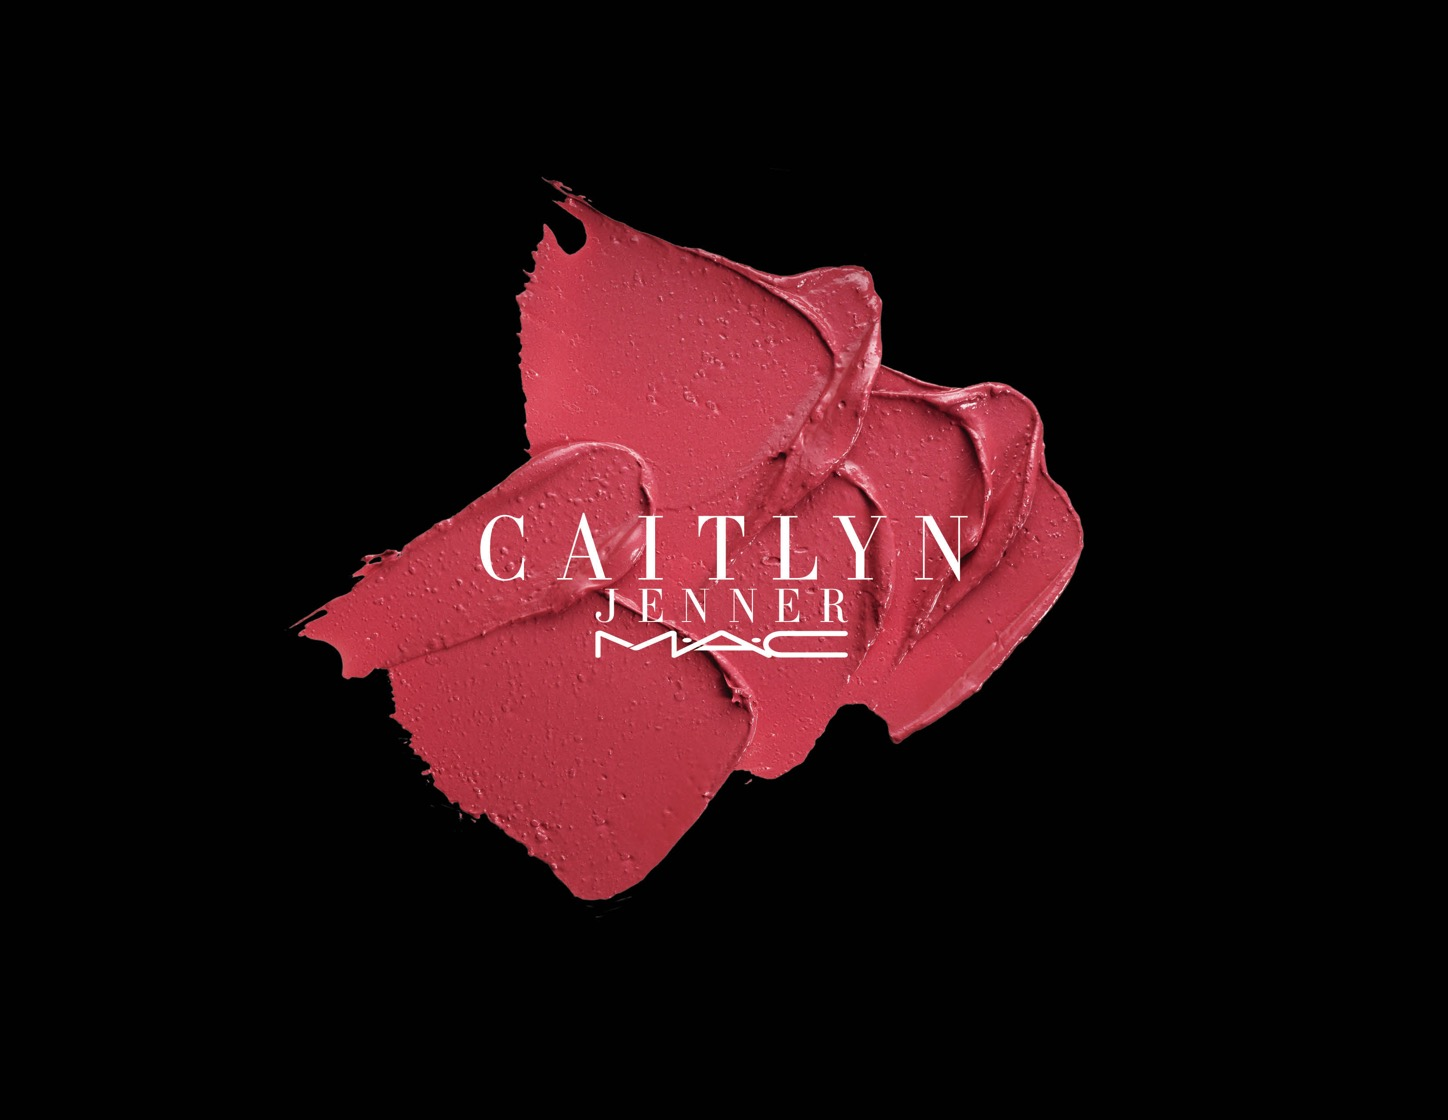 Caitlyn Jenner MAC Lipstick Finally Free